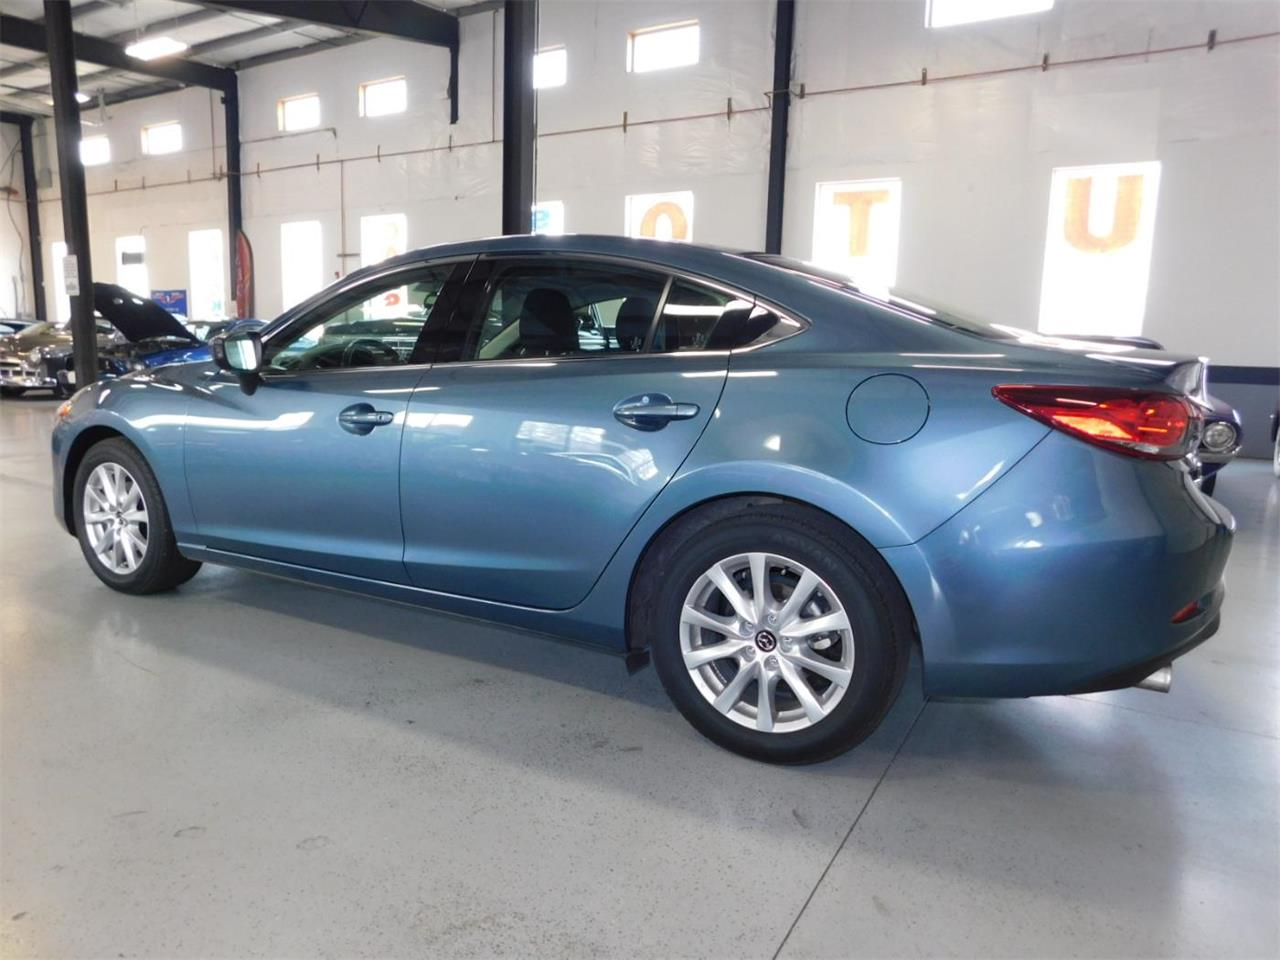 Large Picture of 2015 Mazda6 located in Bend Oregon - $15,995.00 - LRNC